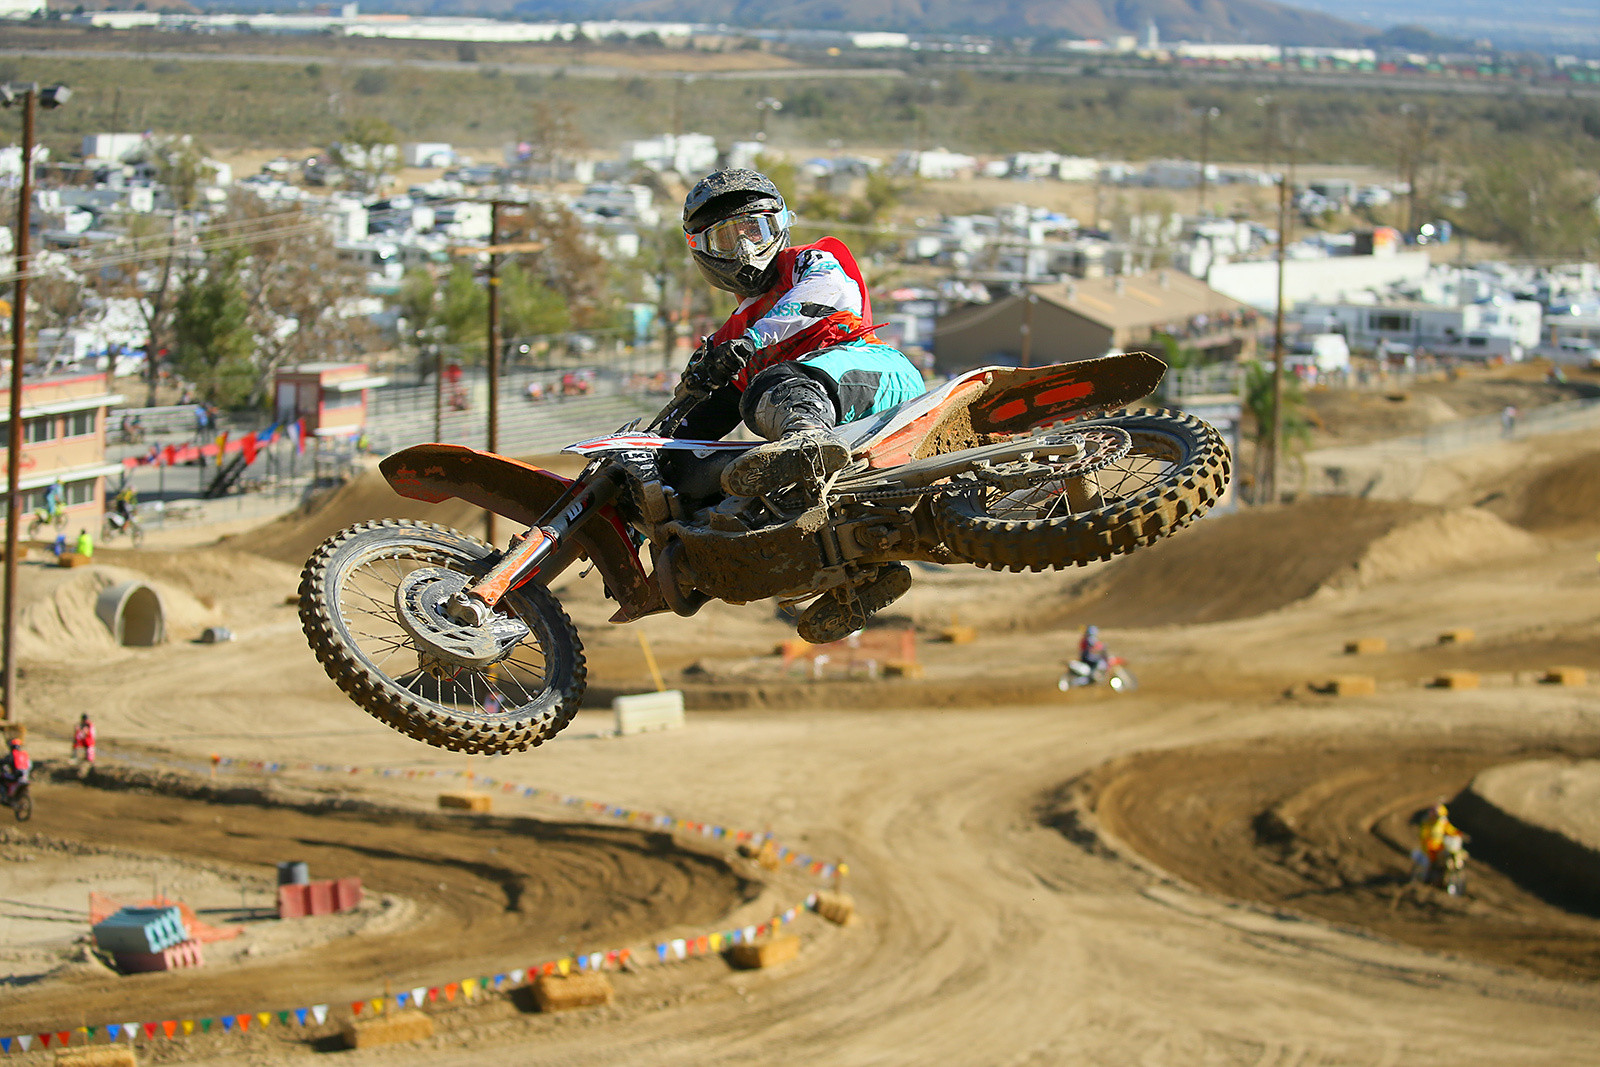 Michael Sleeter - Day In The Dirt Photo Gallery - Motocross Pictures - Vital MX